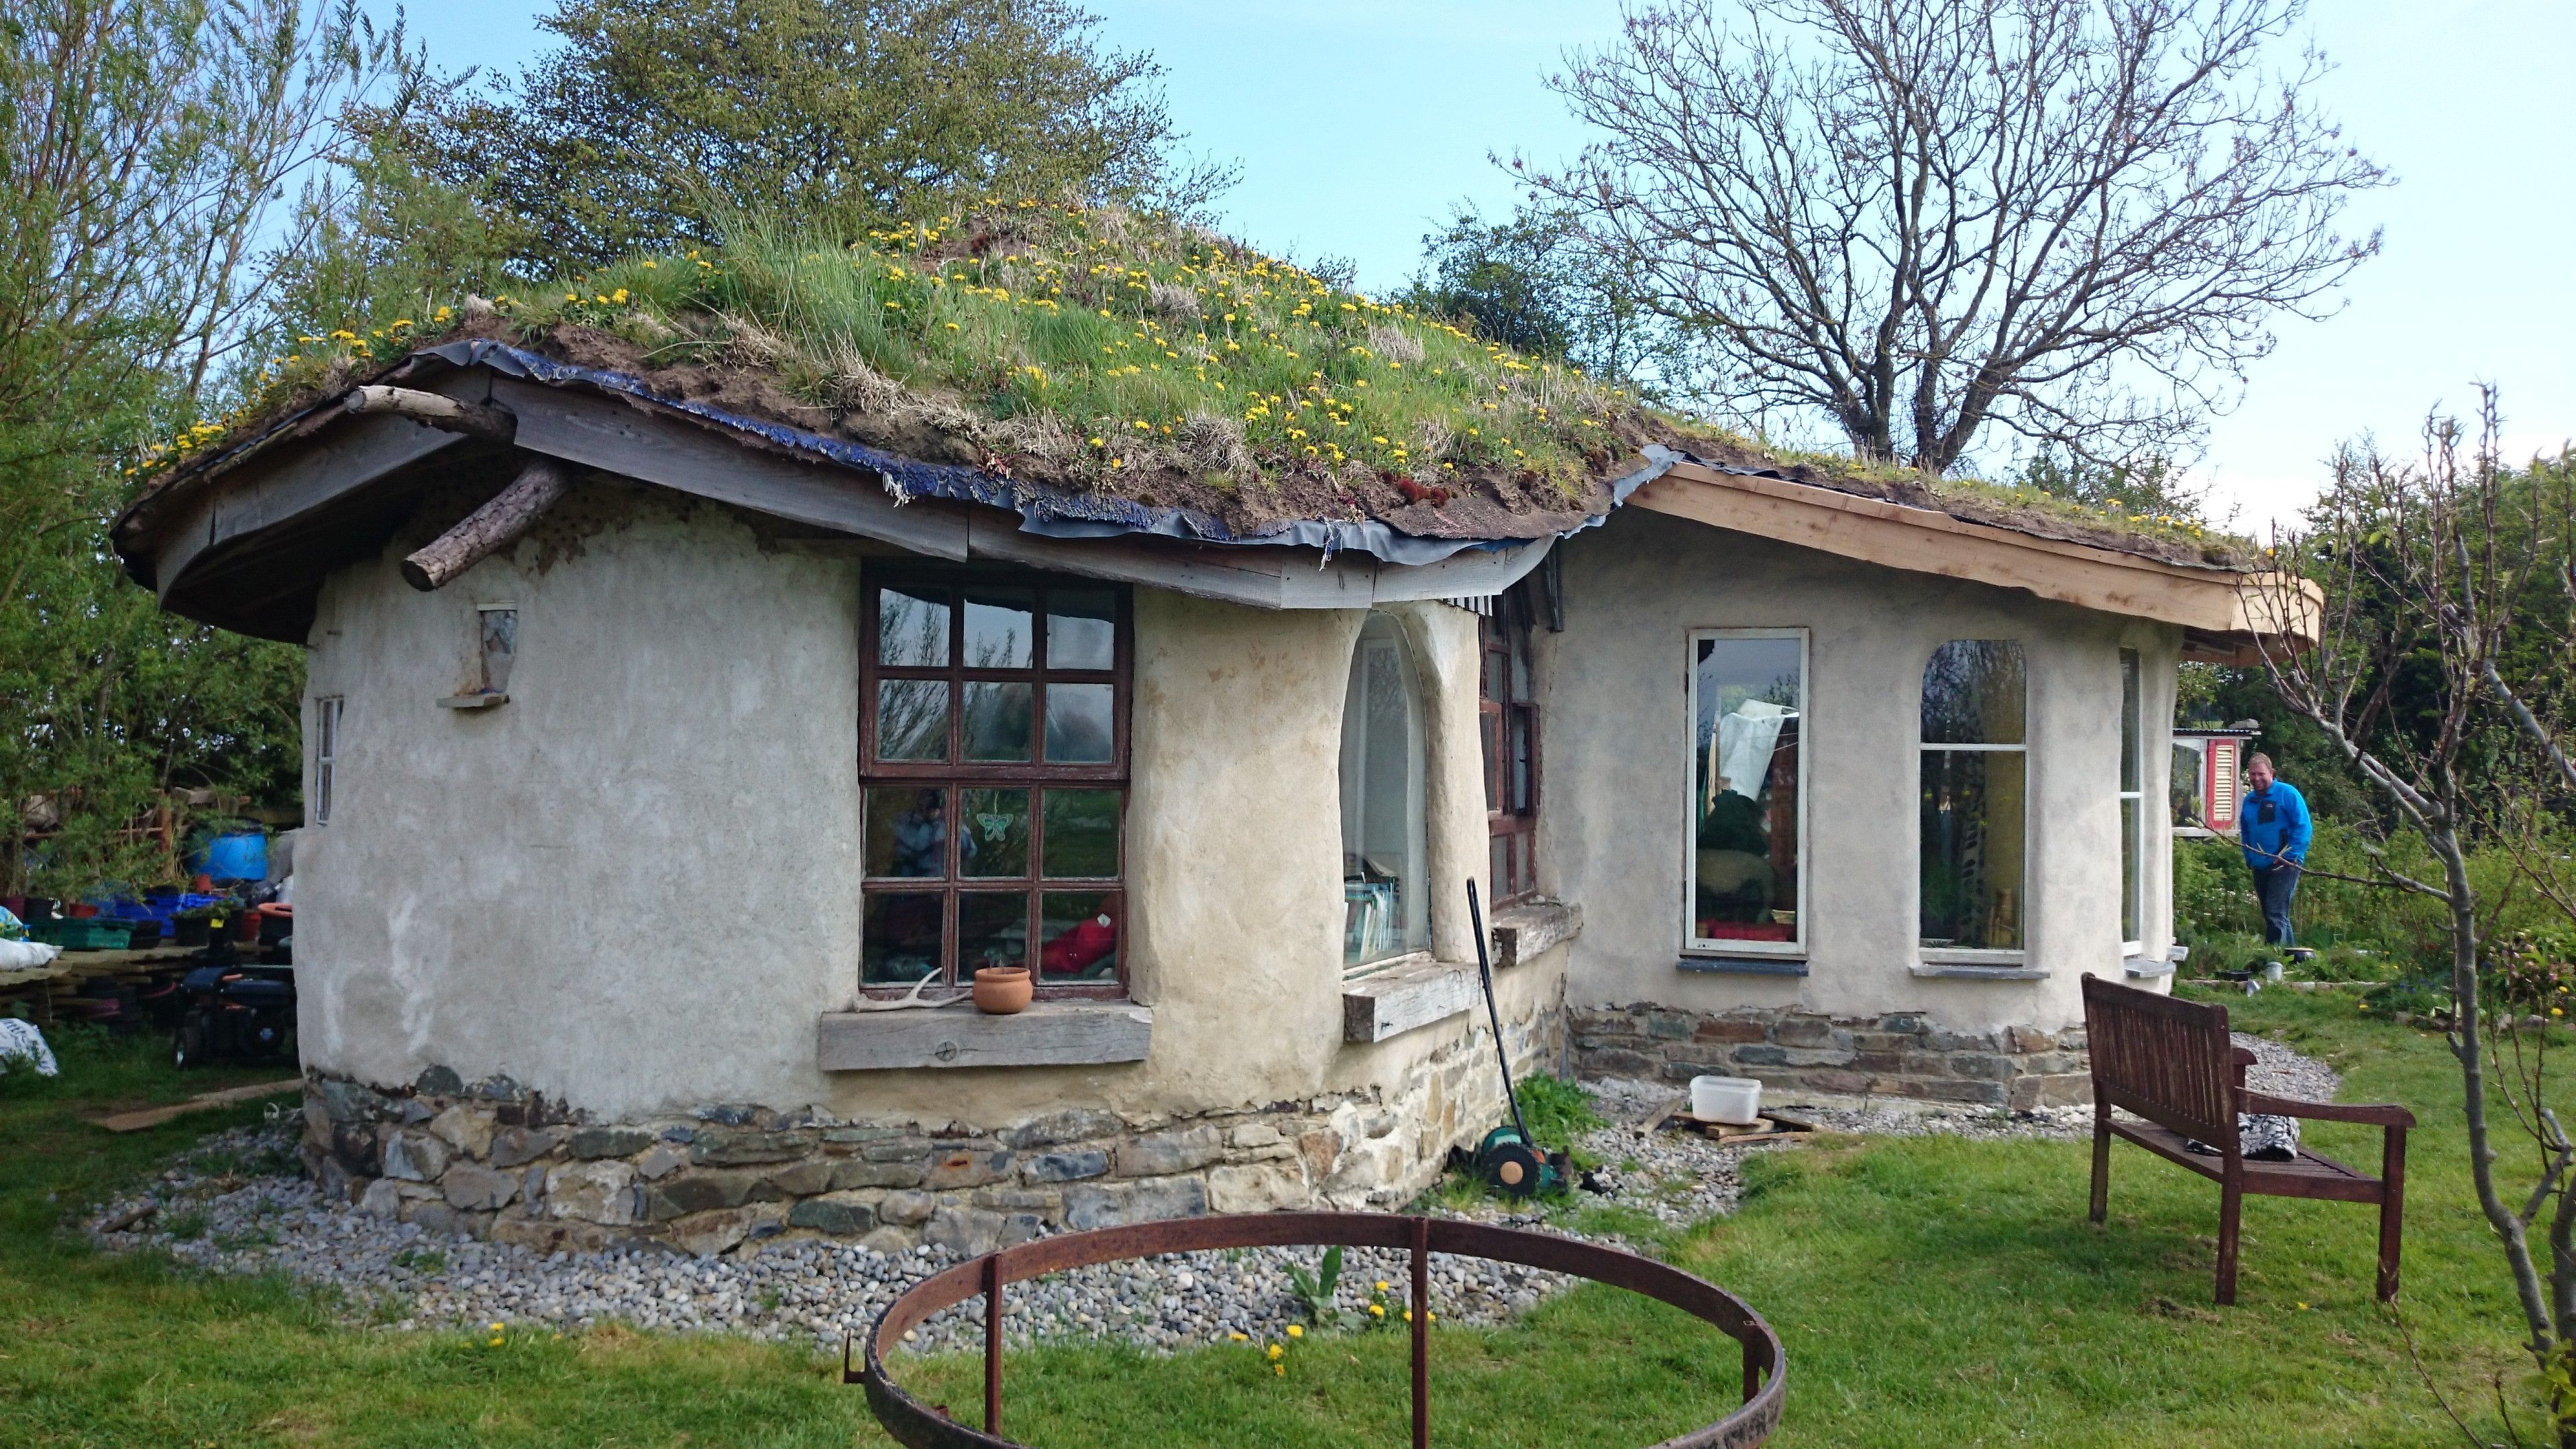 Christian And Louises Cob Cottage In Ireland West Elevation - How to check elevation